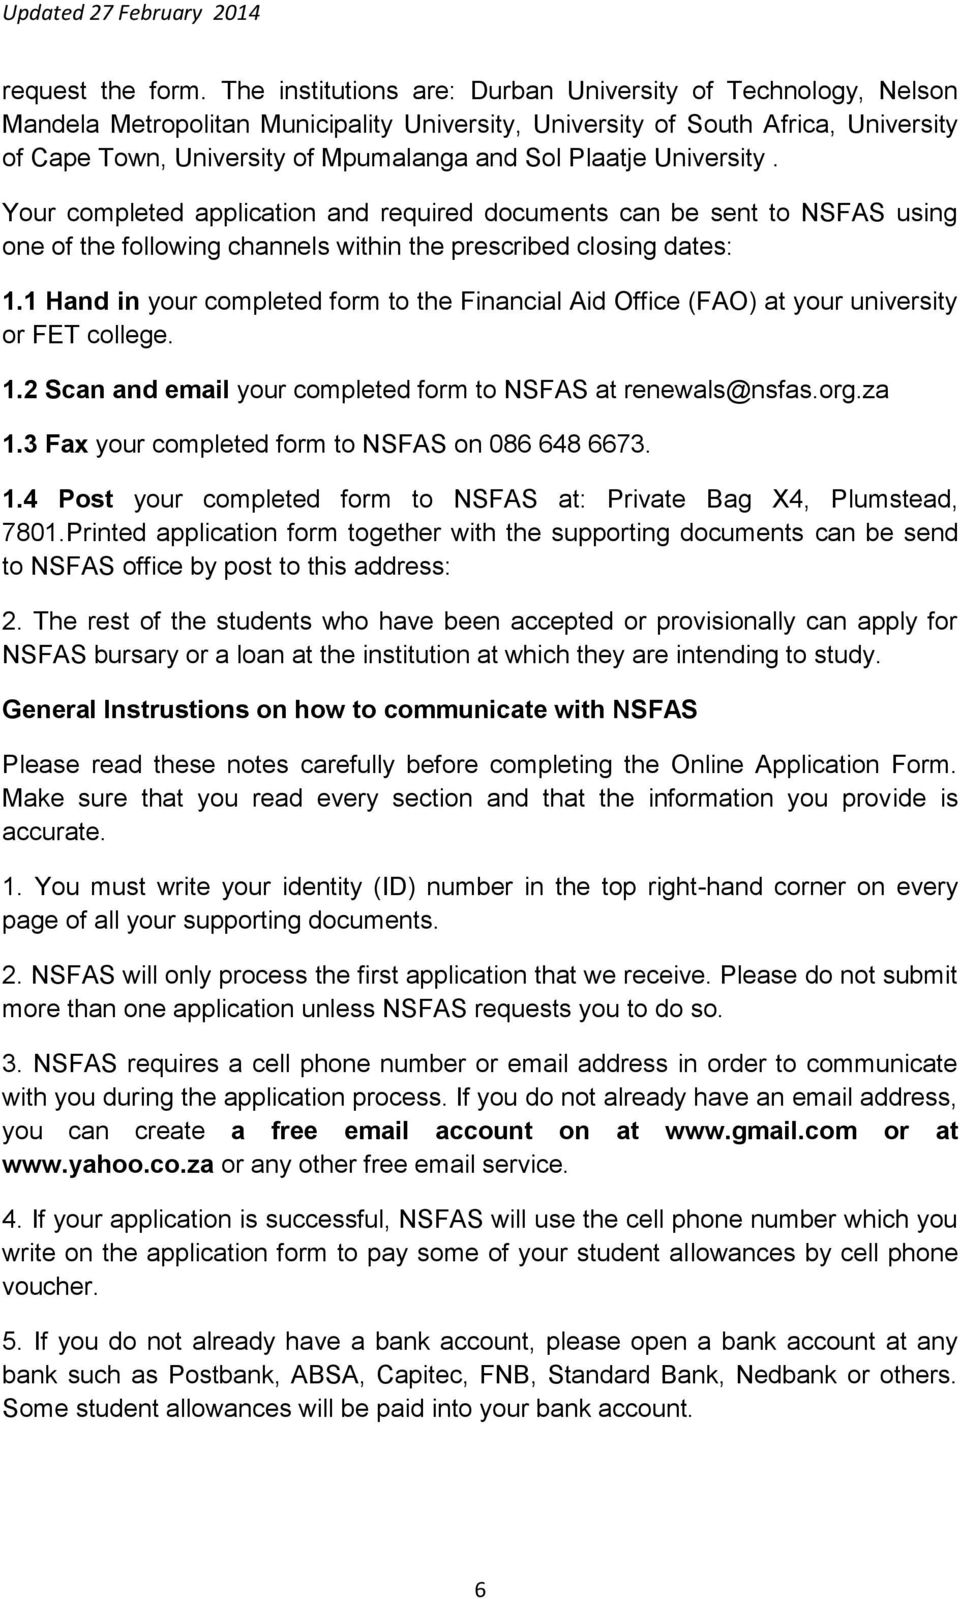 Plaatje University. Your completed application and required documents can be sent to NSFAS using one of the following channels within the prescribed closing dates: 1.